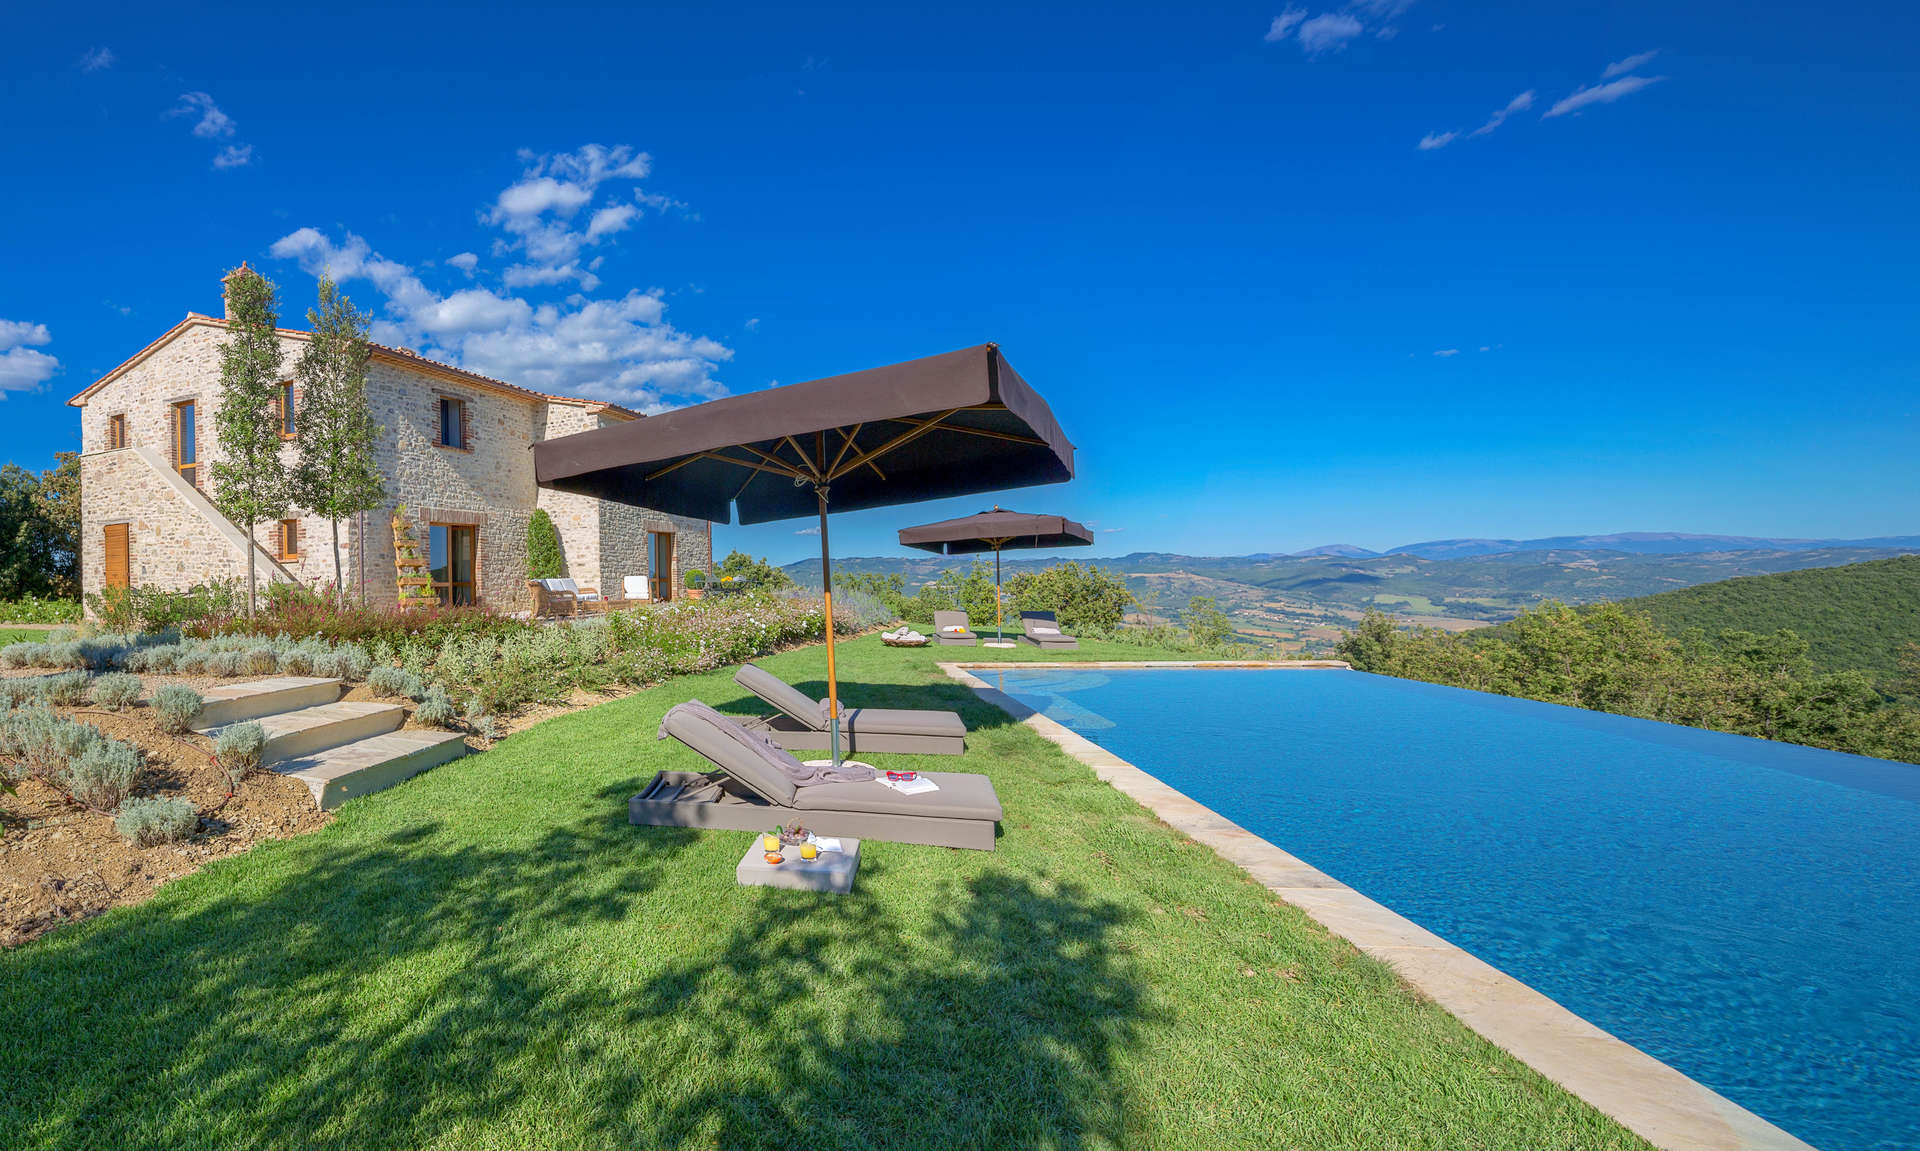 Luxury vacation rentals europe - Italy - Umbria - San giovanni del pantano - Lavise - Image 1/11